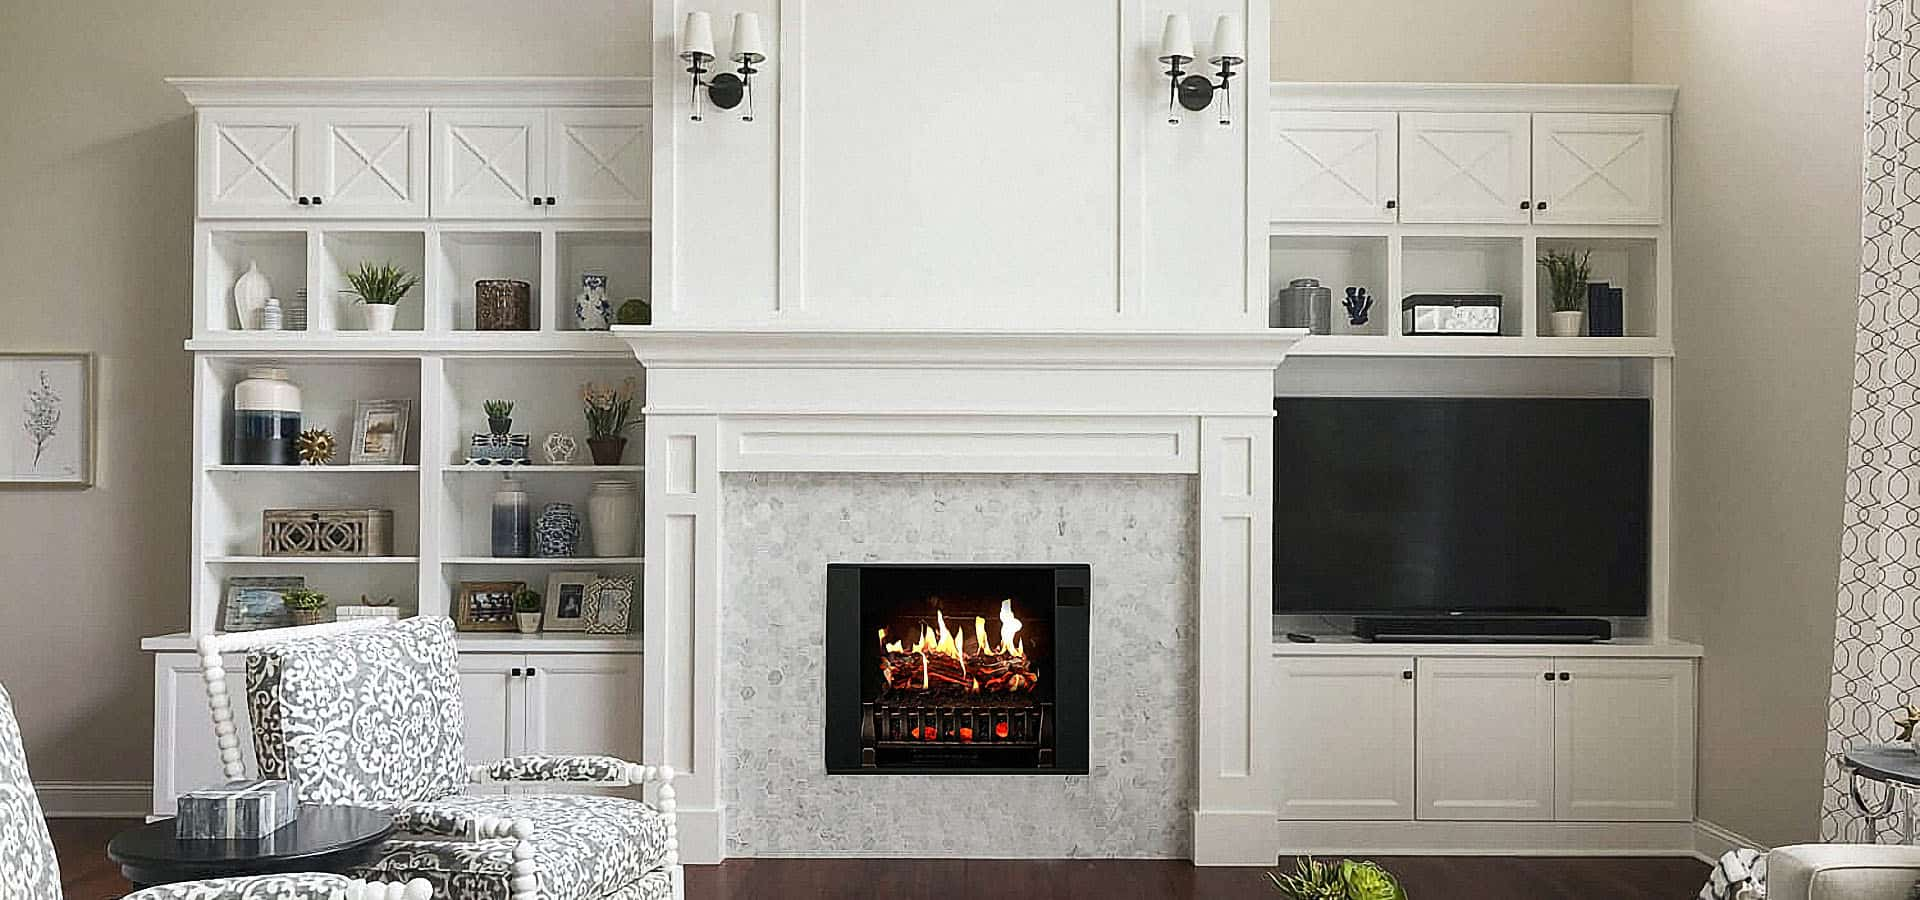 how to turn on electric fireplace